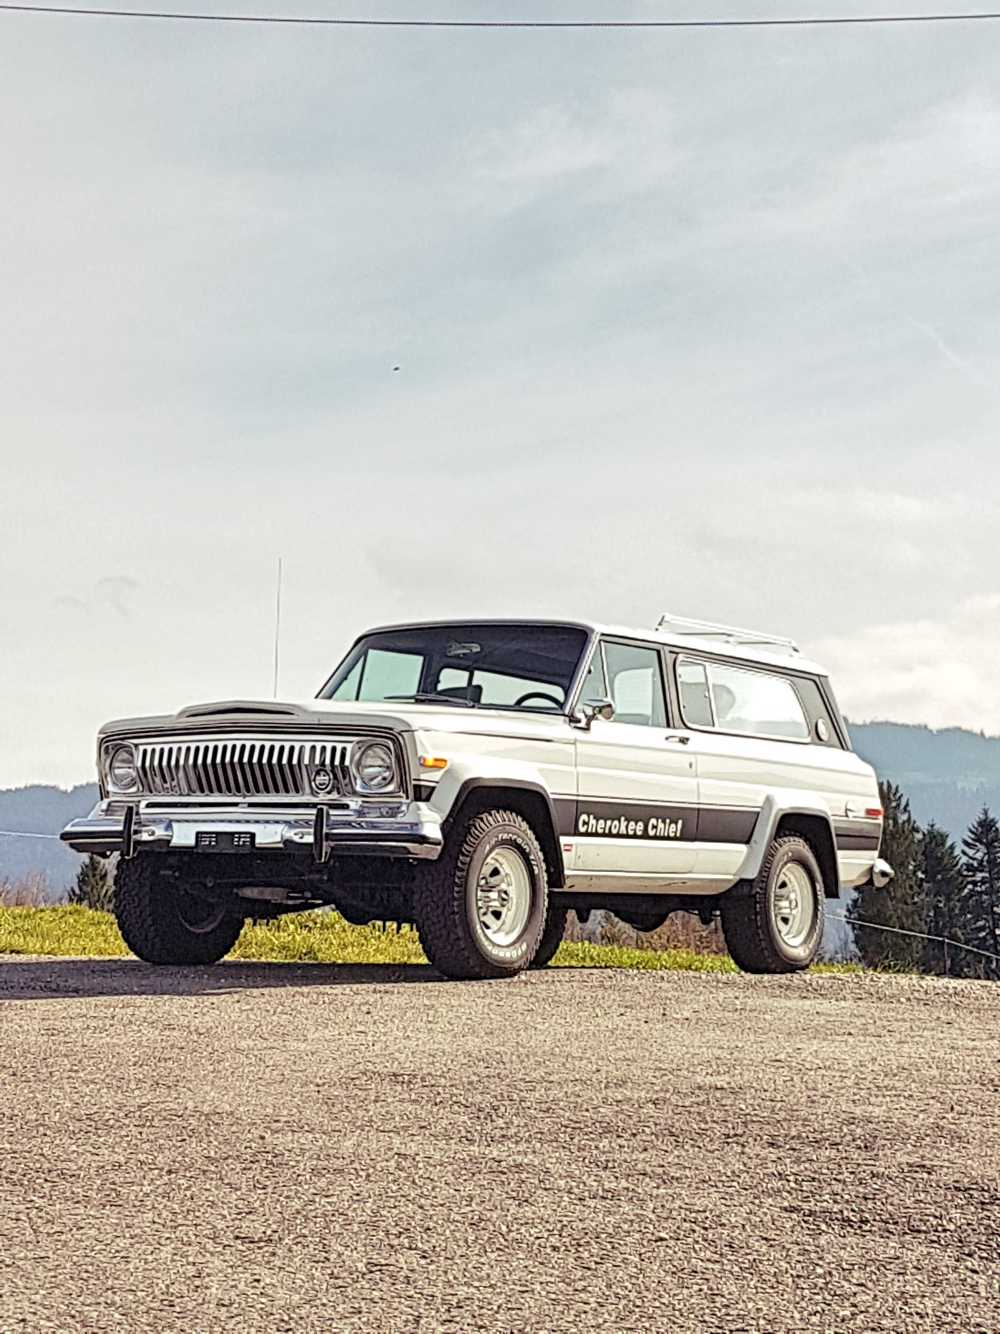 jeep-cherokee-chief-1978-shooting-moleson-6